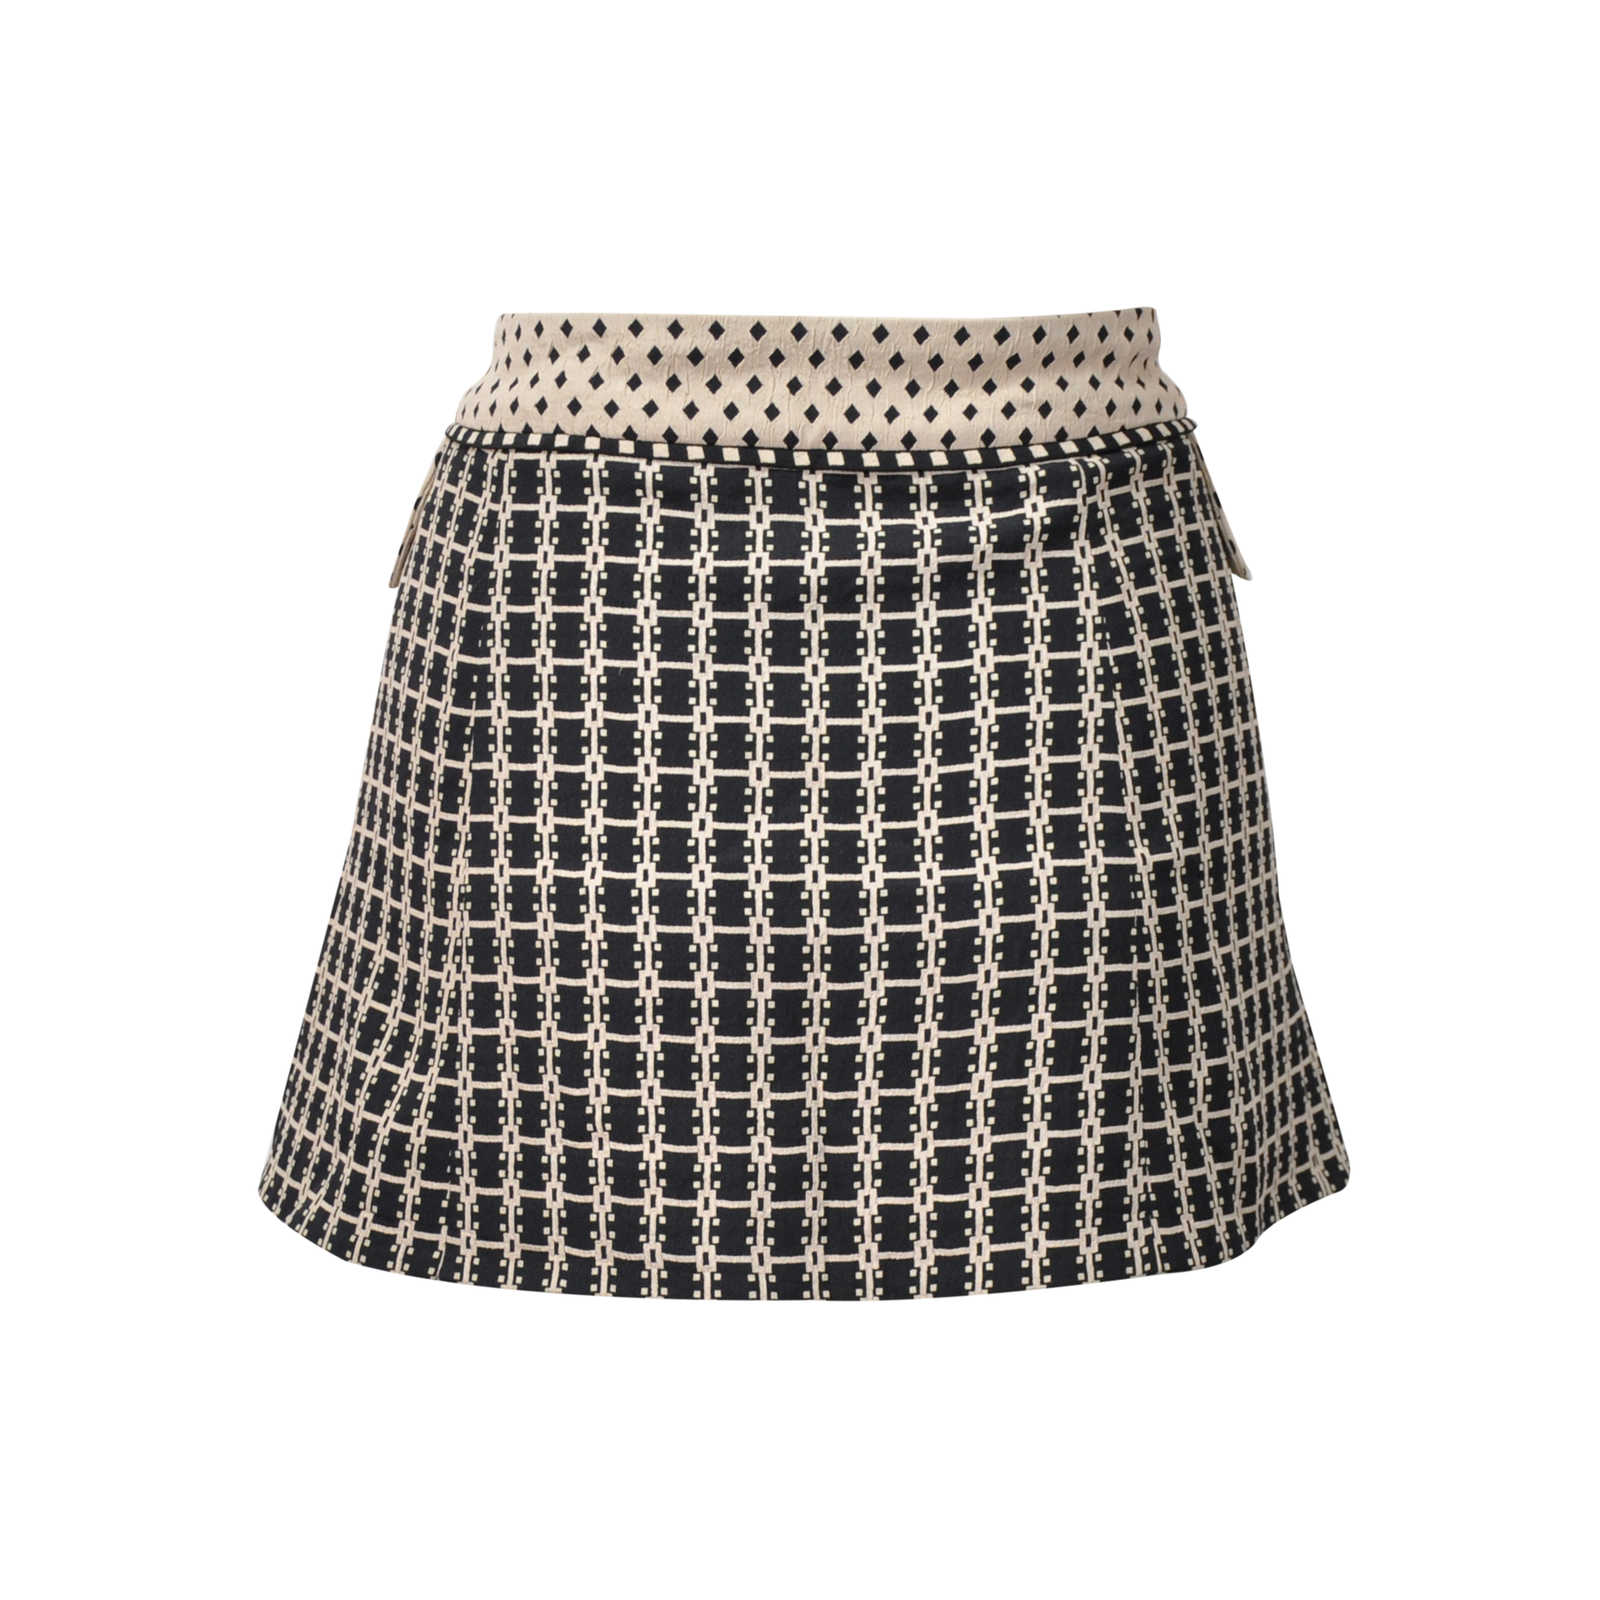 ee0b799f98 ... Authentic Second Hand Louis Vuitton Printed Mini Skirt (PSS-200-00499)  ...